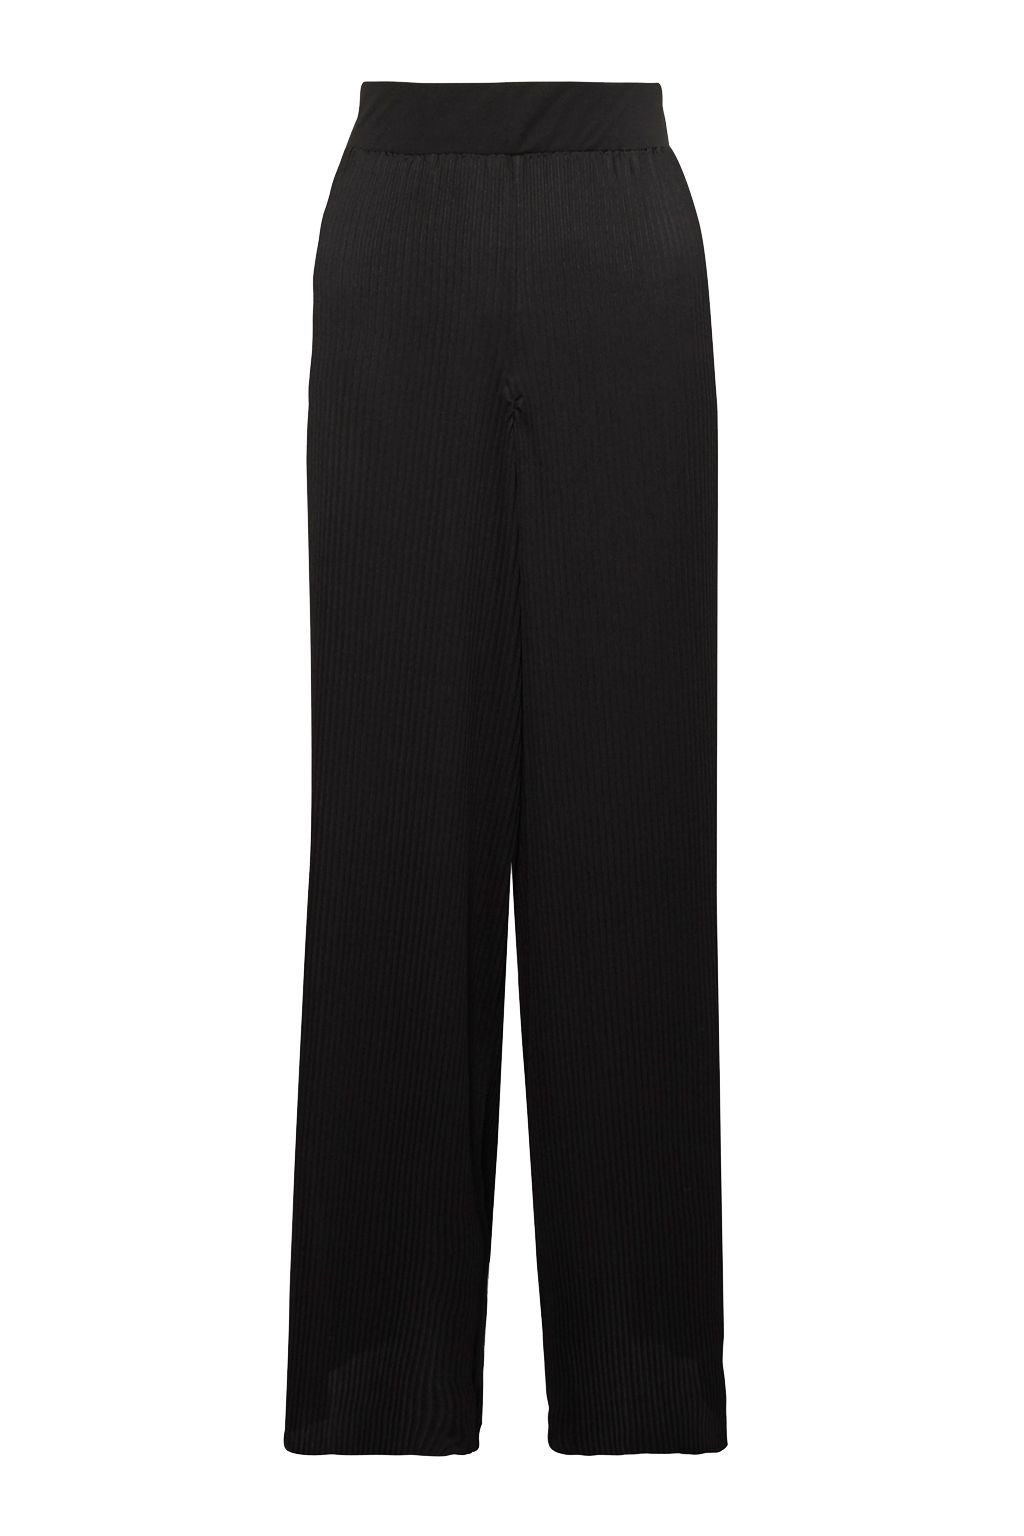 Great Plains Concertina Pleat Trousers, Black